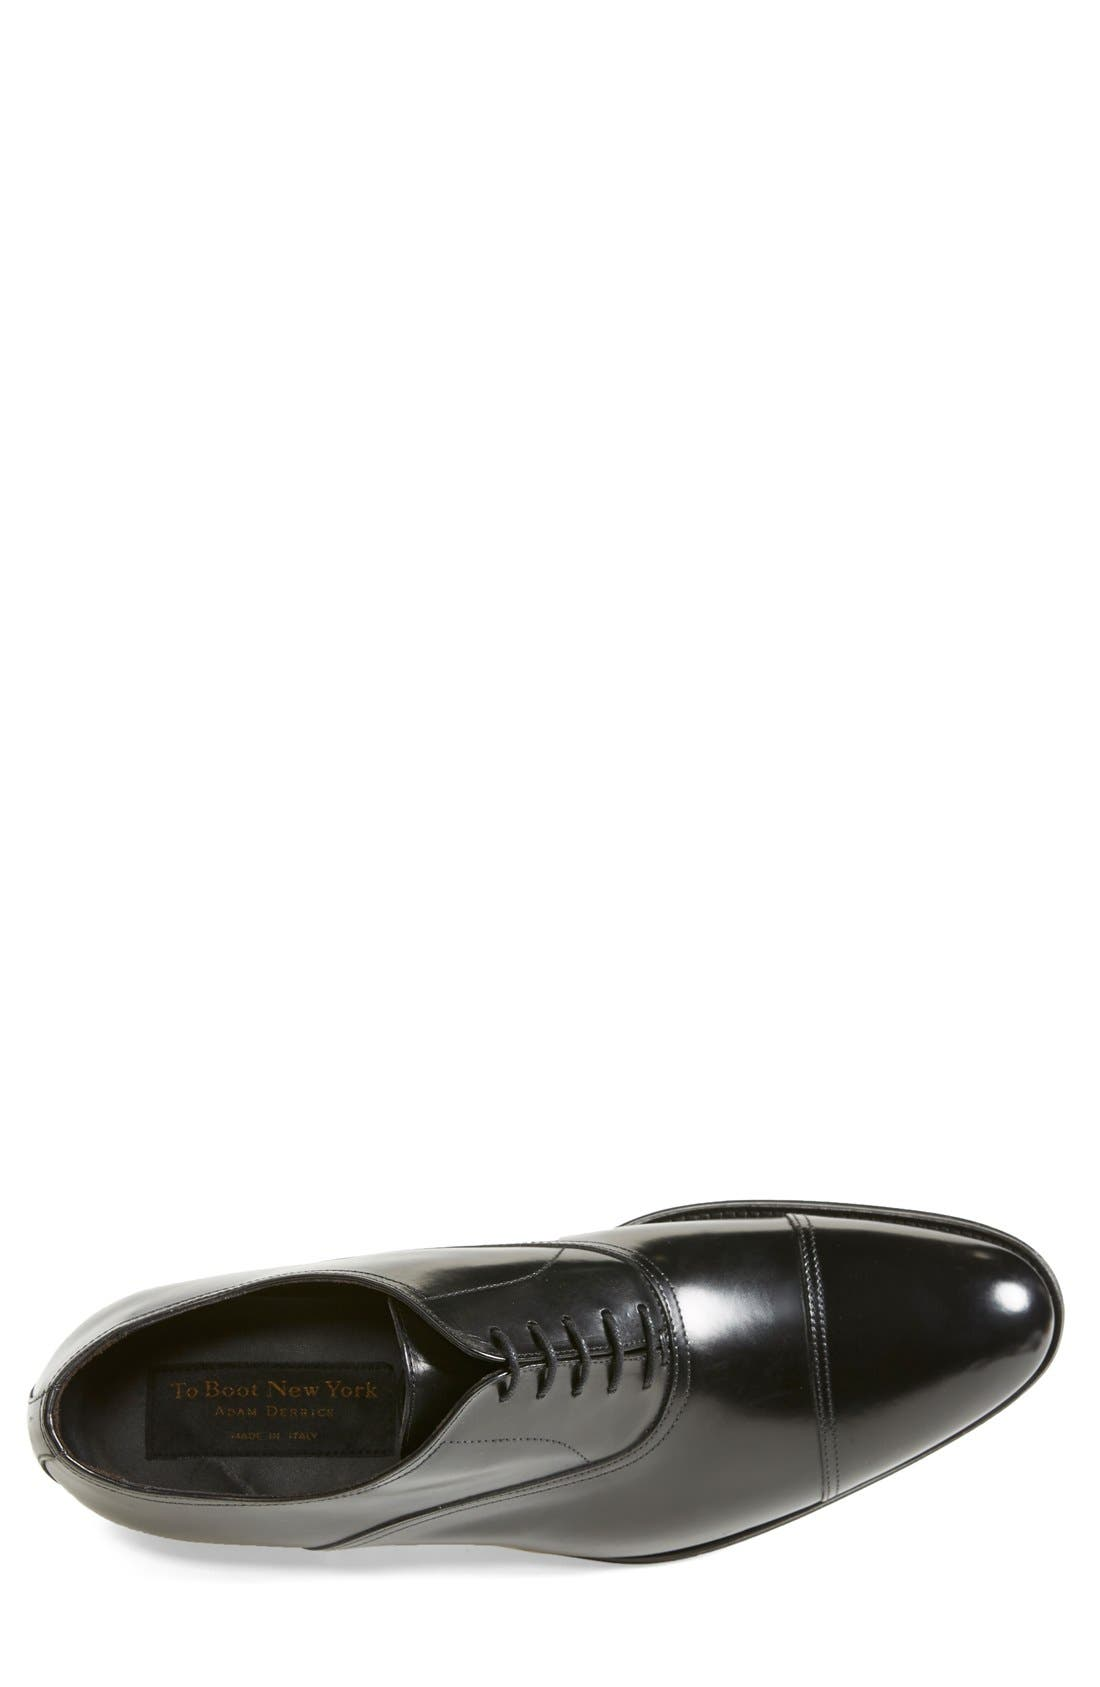 TO BOOT NEW YORK, Brandon Cap Toe Oxford, Alternate thumbnail 4, color, BLACK LEATHER